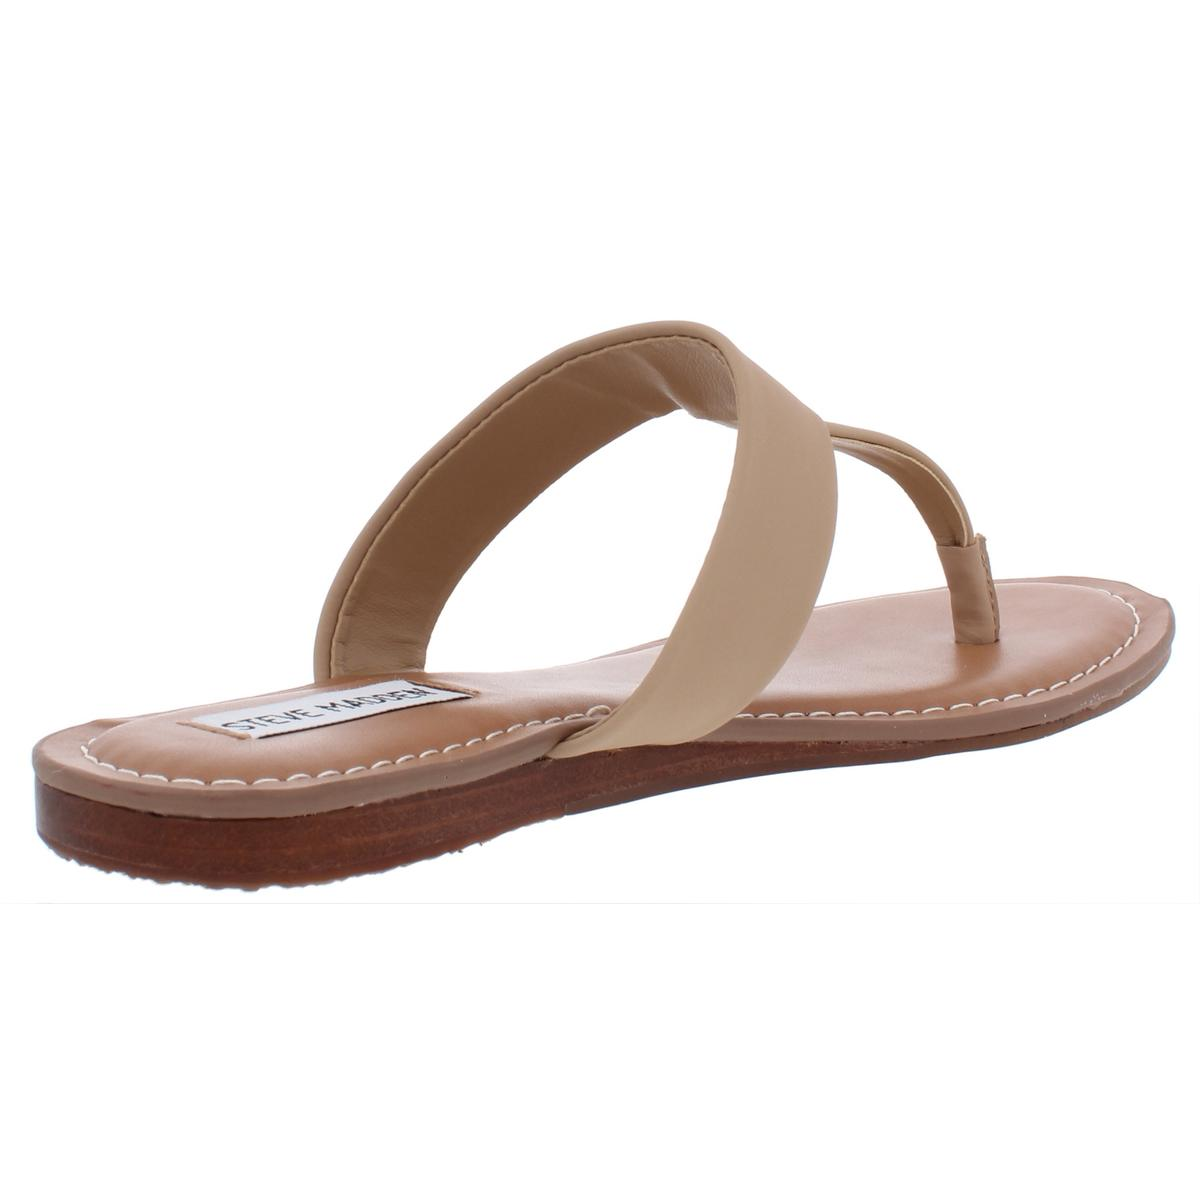 Steve-Madden-Femme-Vacay-Faux-Cuir-String-Sandales-Flats-Chaussures-BHFO-0099 miniature 6